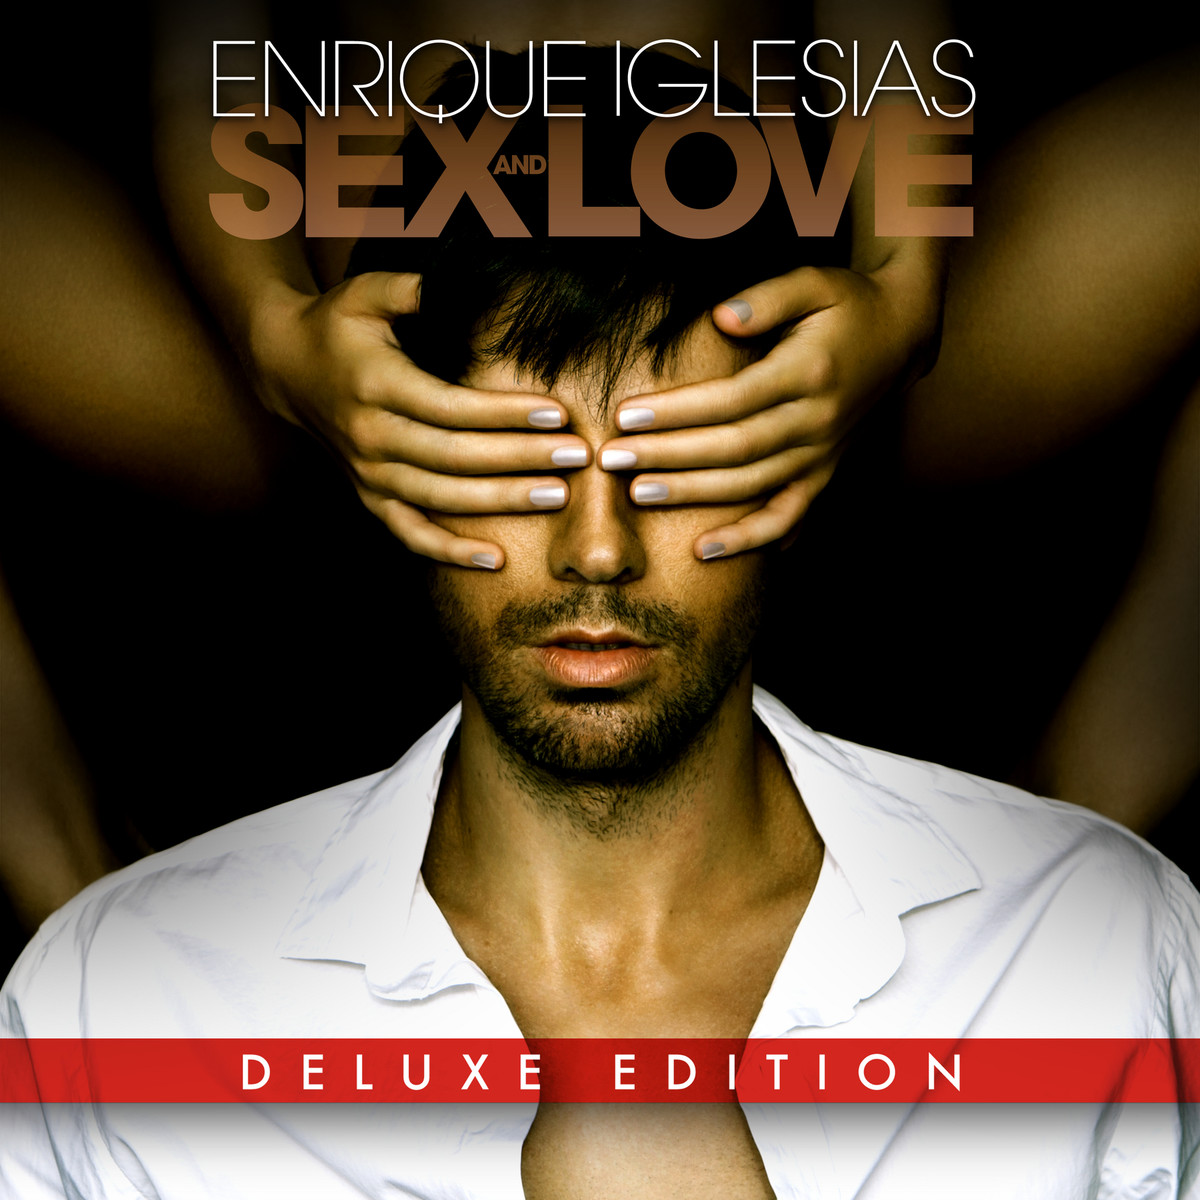 http://midolcevitablogs.blogspot.com.es/2014/07/sex-and-love-de-enrique-iglesias-opinion.html#